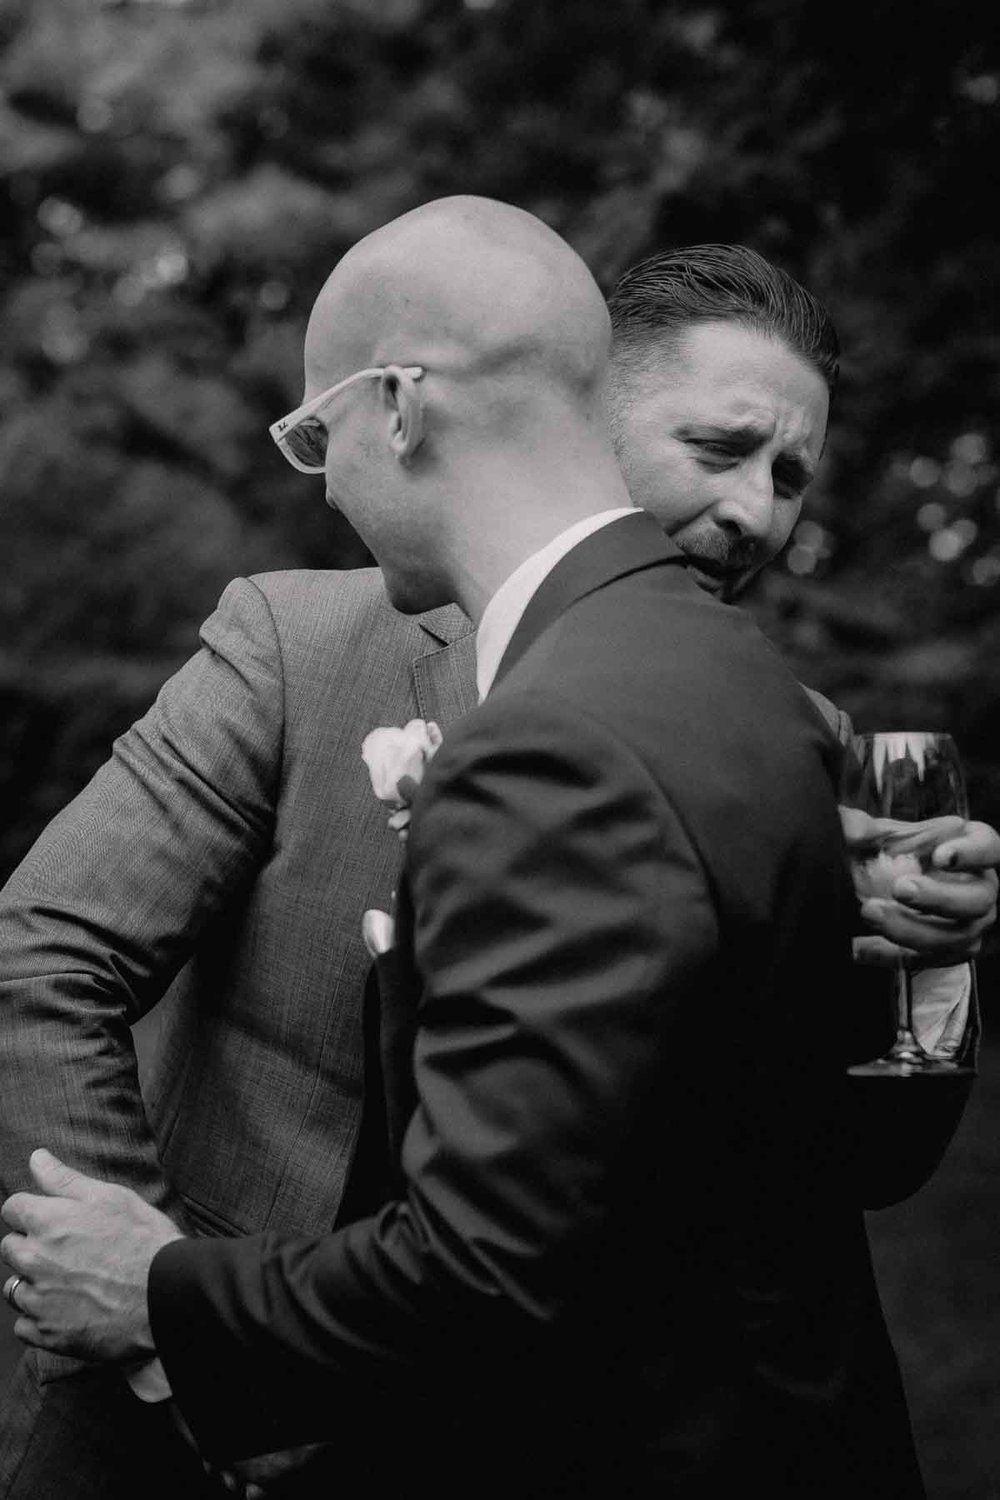 niagara on the lake winery wedding by evolylla photography 0032.jpg